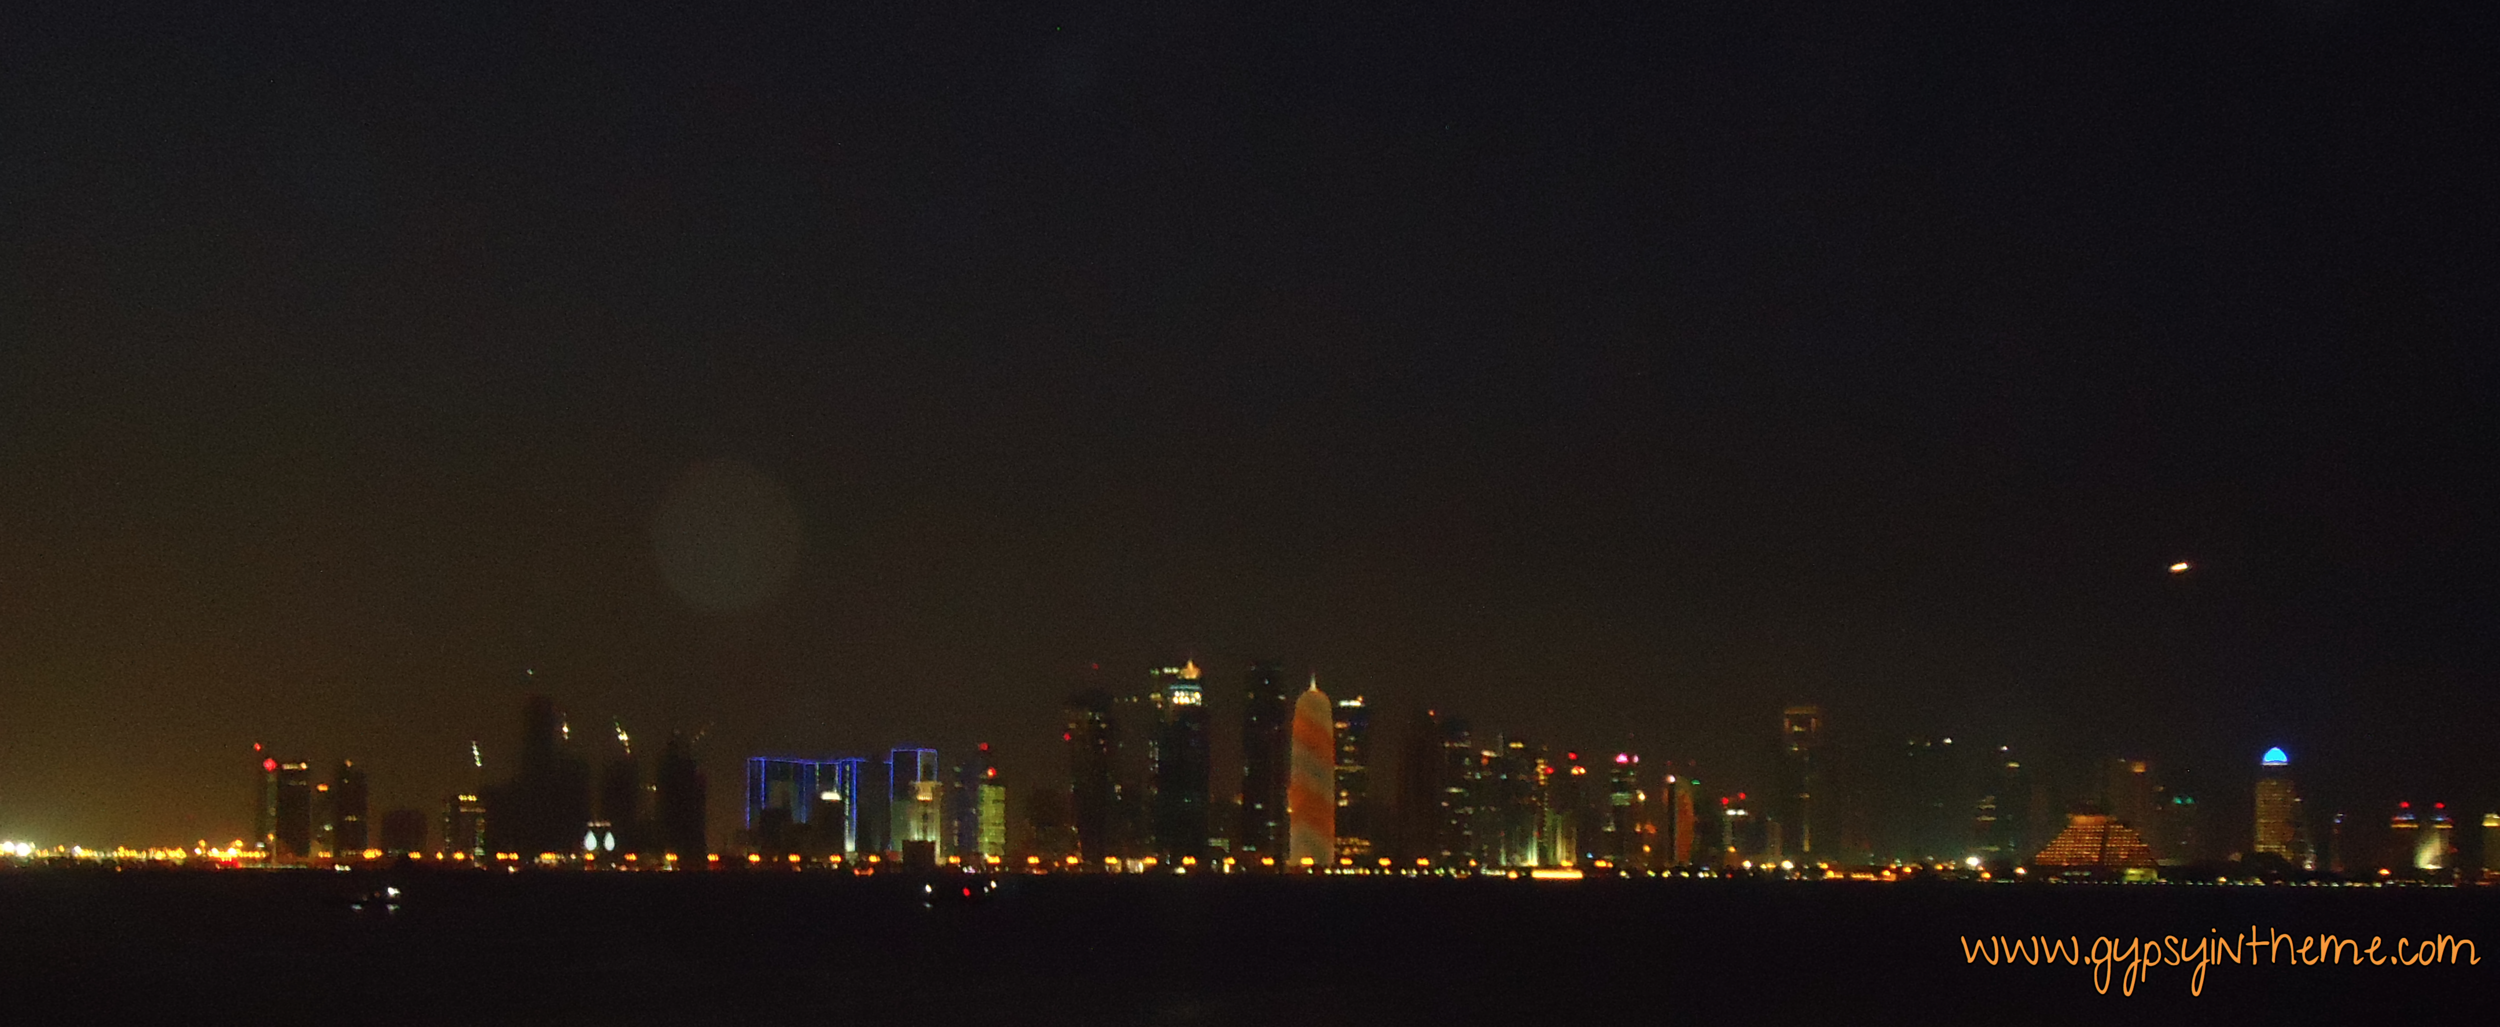 Doha Skyline at night as seen from the Museum of Islamic Arts.